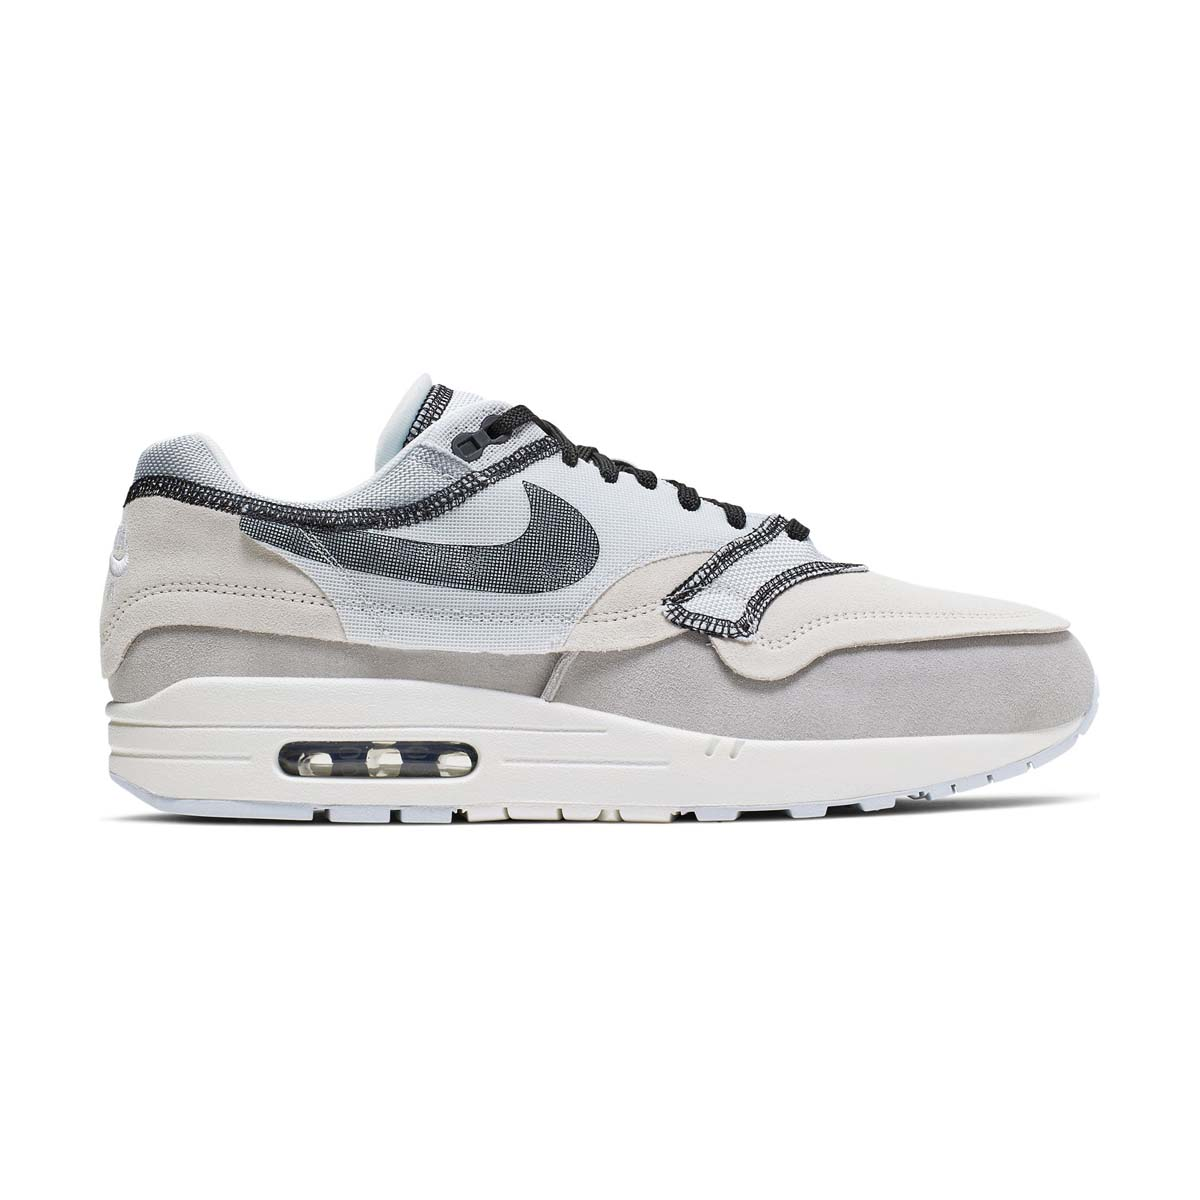 Men's Nike Air Max 1 Premium SE Shoe